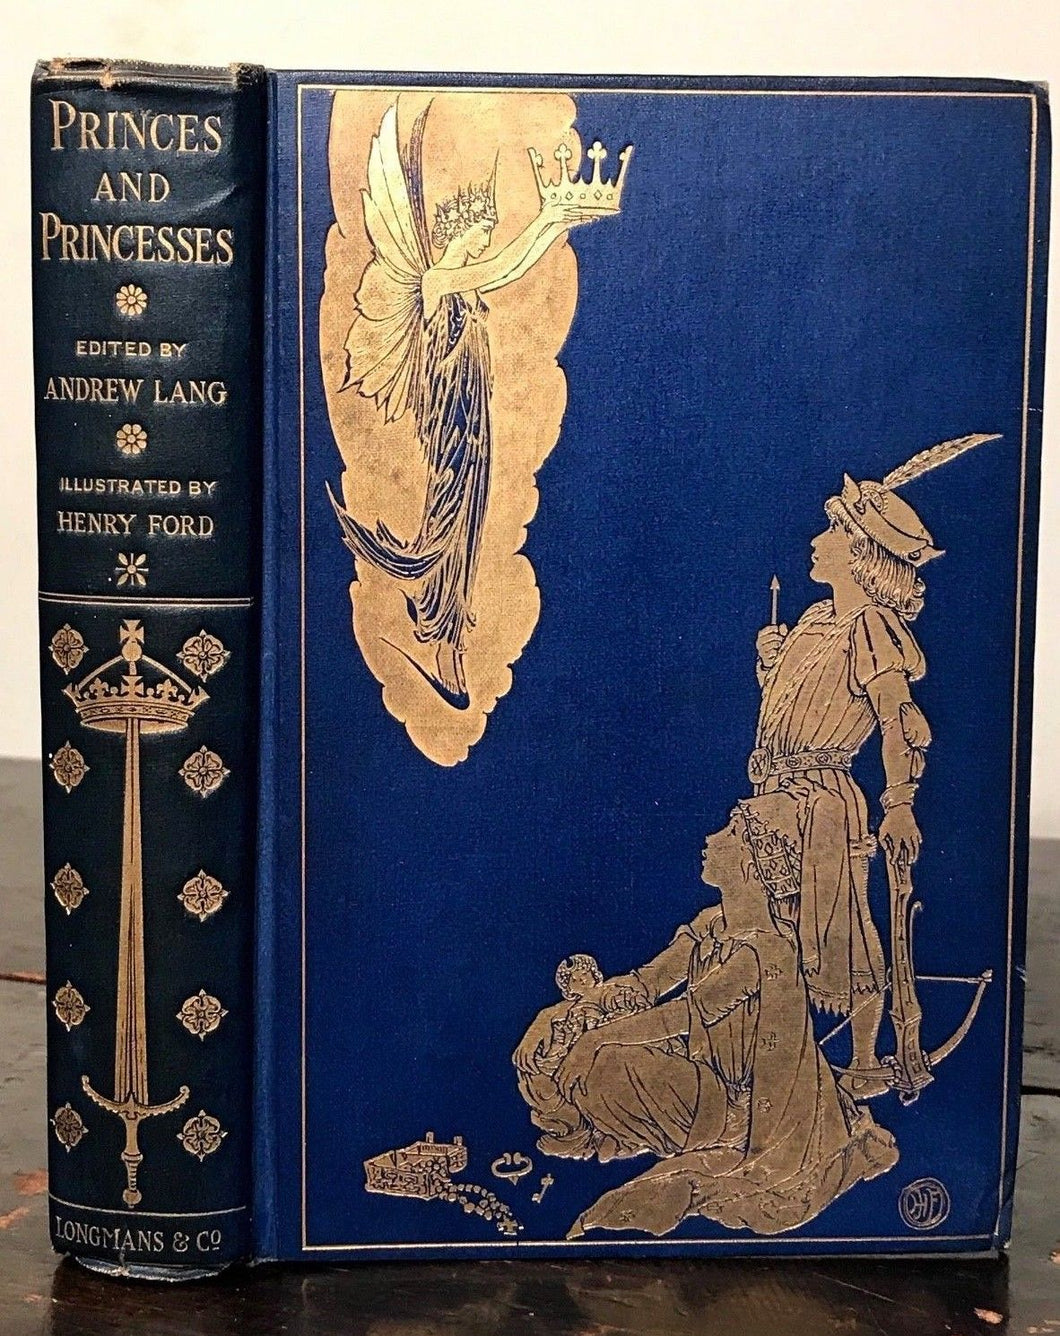 BOOK OF PRINCES AND PRINCESSES - Lang, Ford Illustrations - 1st Ed, 1908